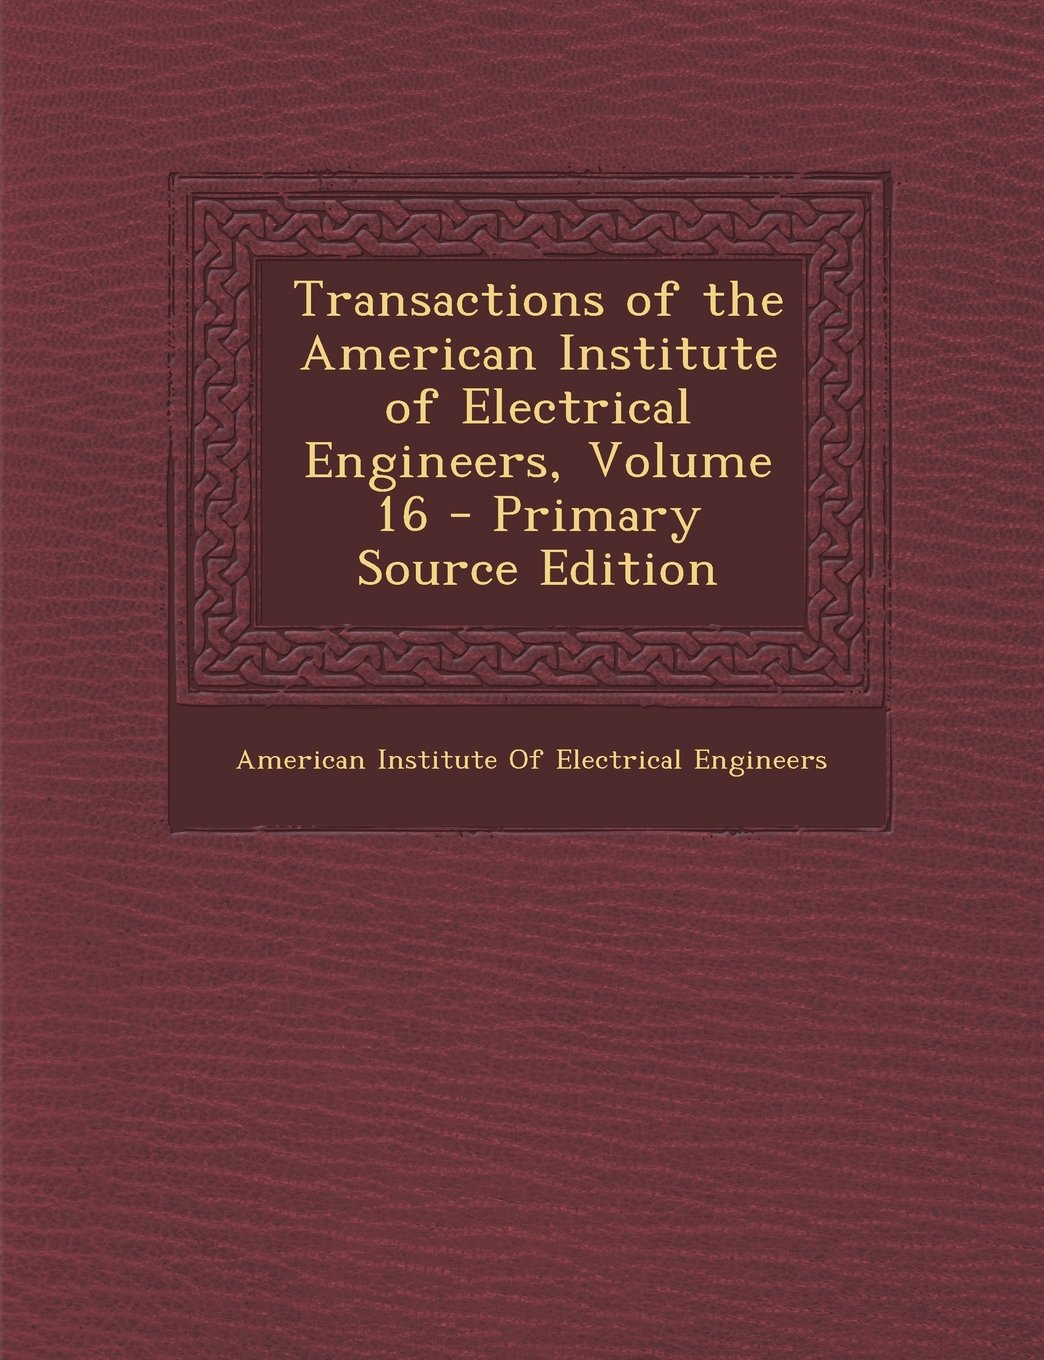 Download Transactions of the American Institute of Electrical Engineers, Volume 16 PDF ePub ebook